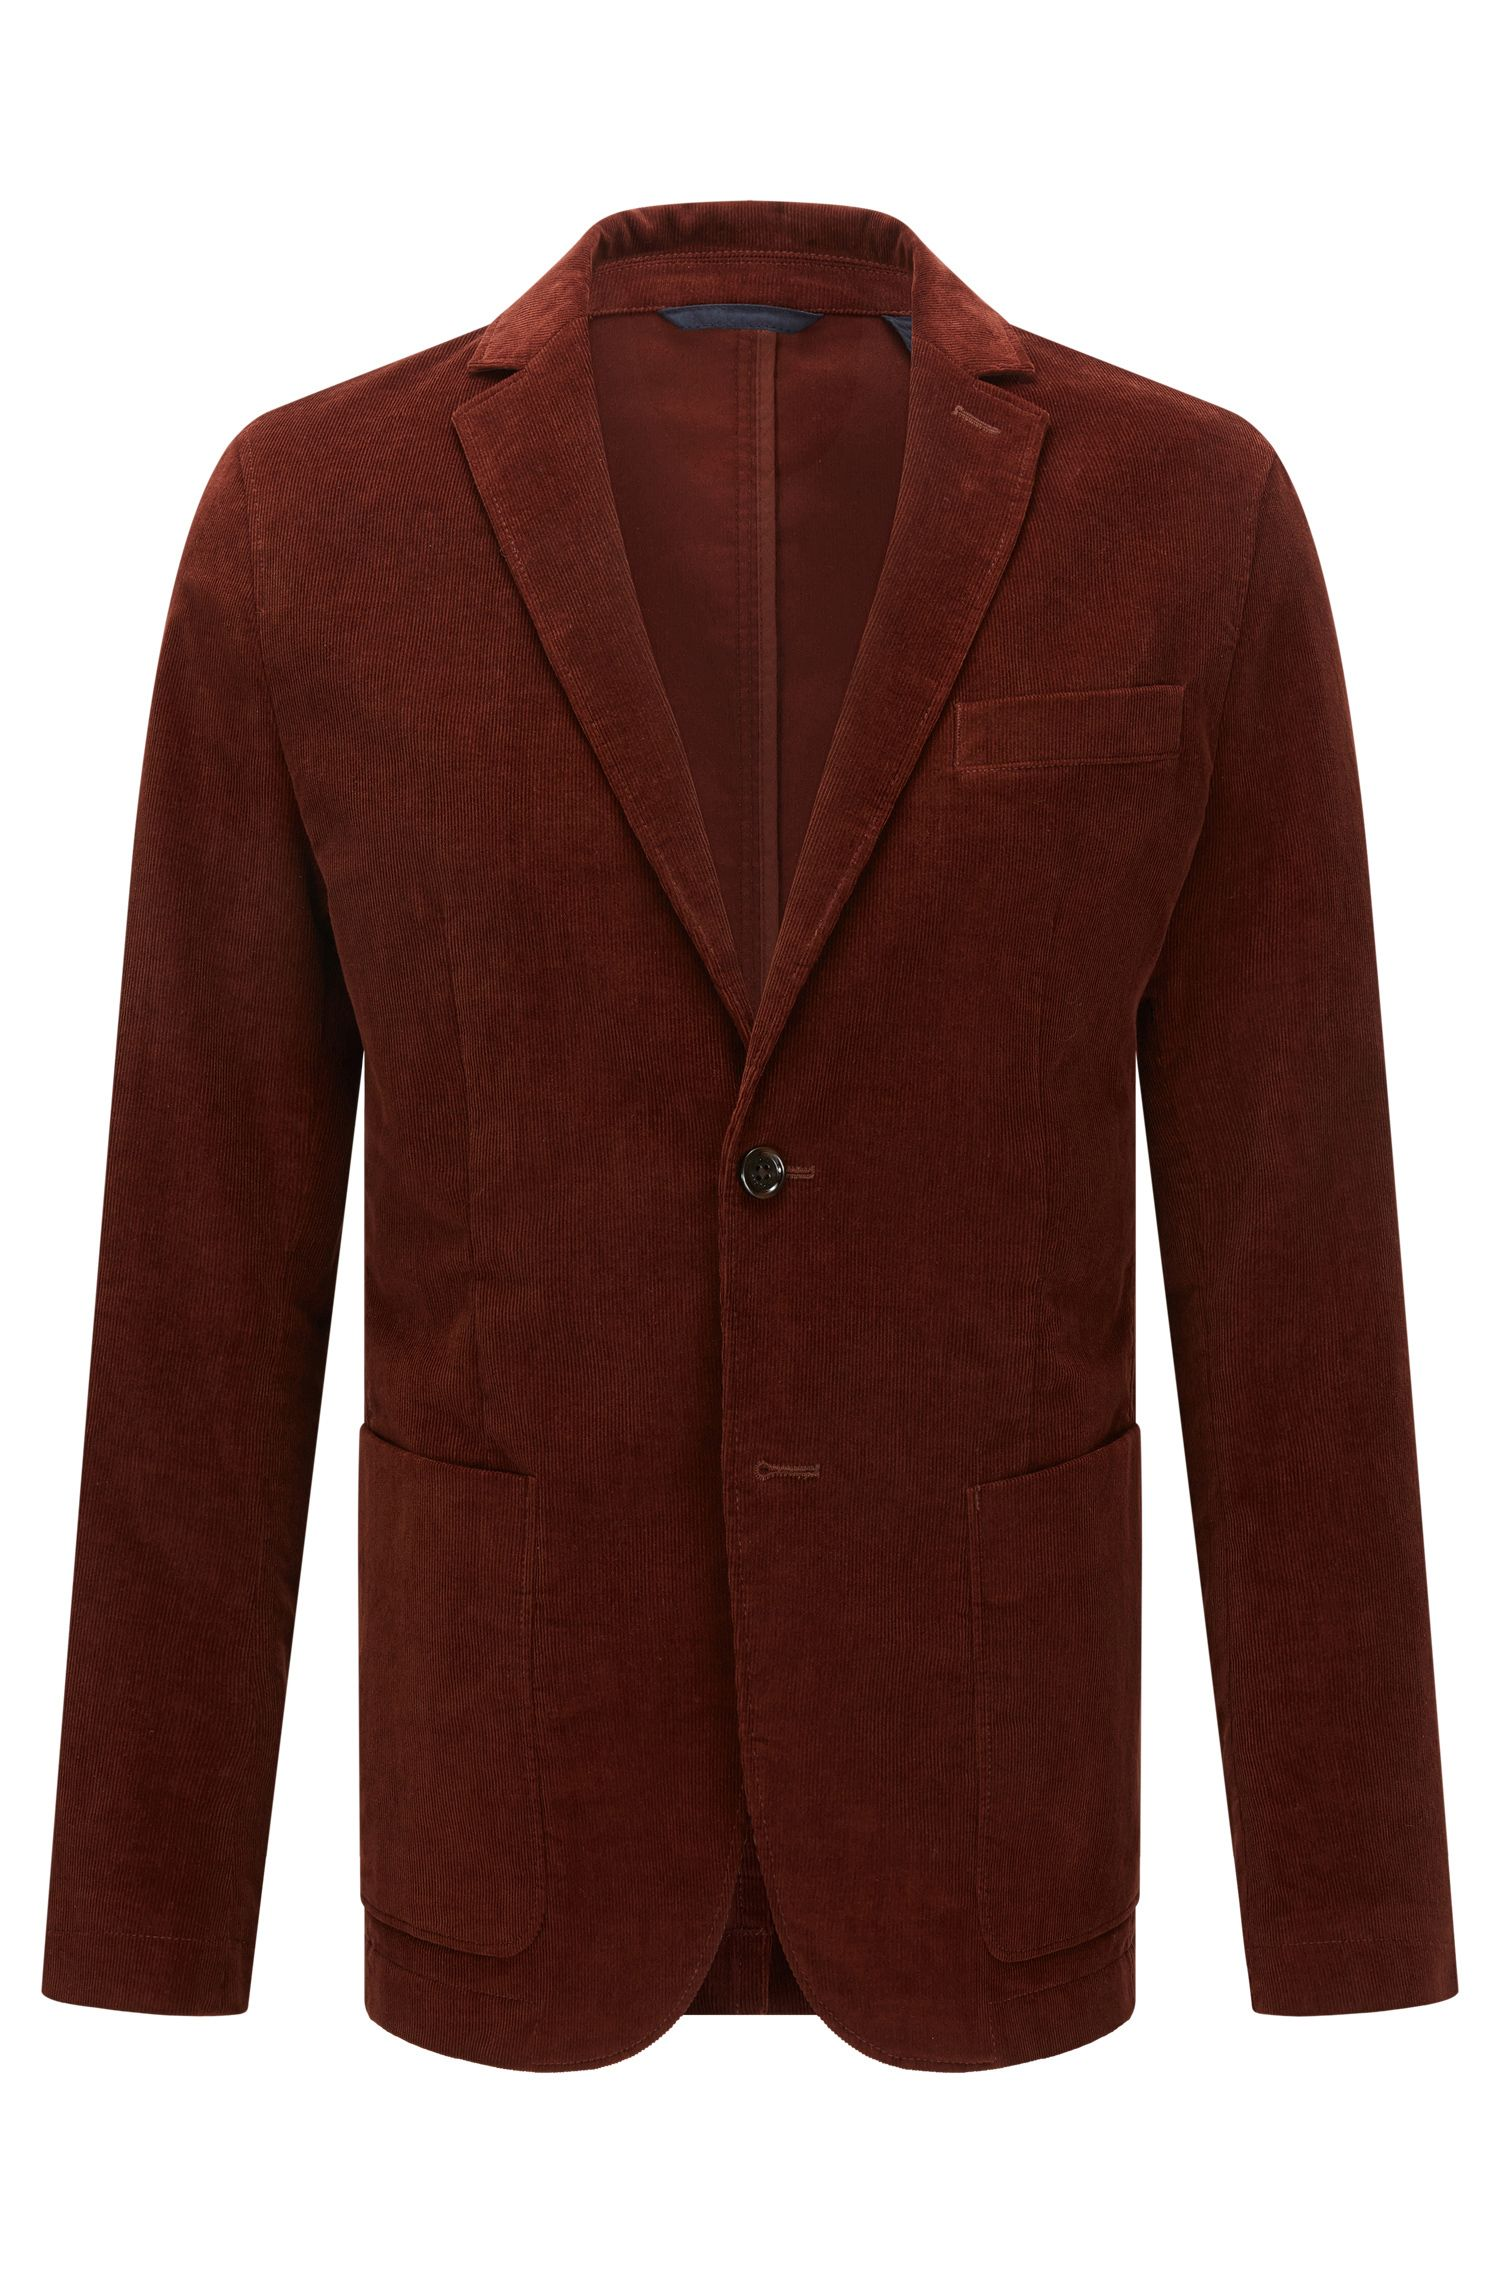 Stretch Corduroy Sport Coat, Slim Fit | Nortens W, Brown